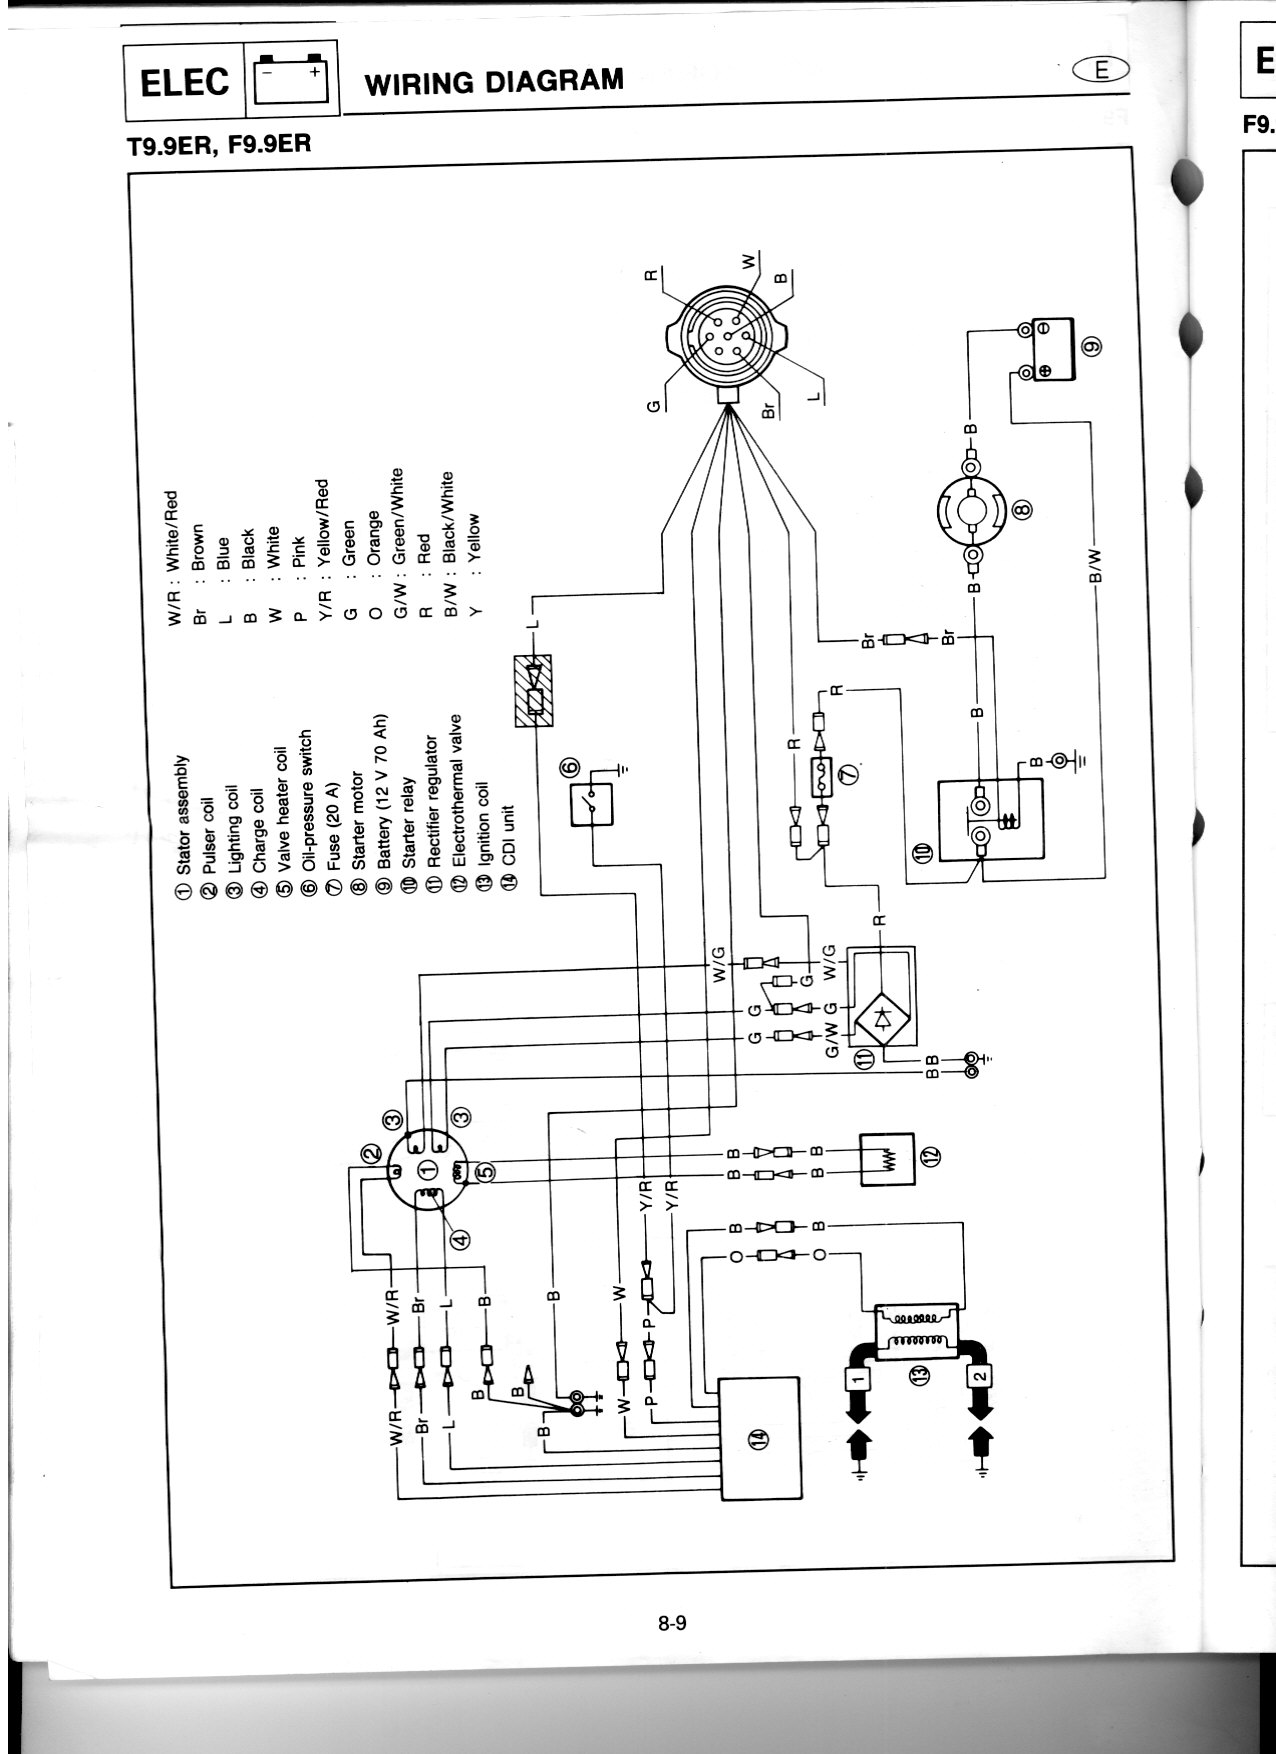 t9 9 electrical wiring diagram needed pdq owners forum rh pdqforum com yamaha outboard 703 wiring diagram yamaha outboard rectifier wiring diagram